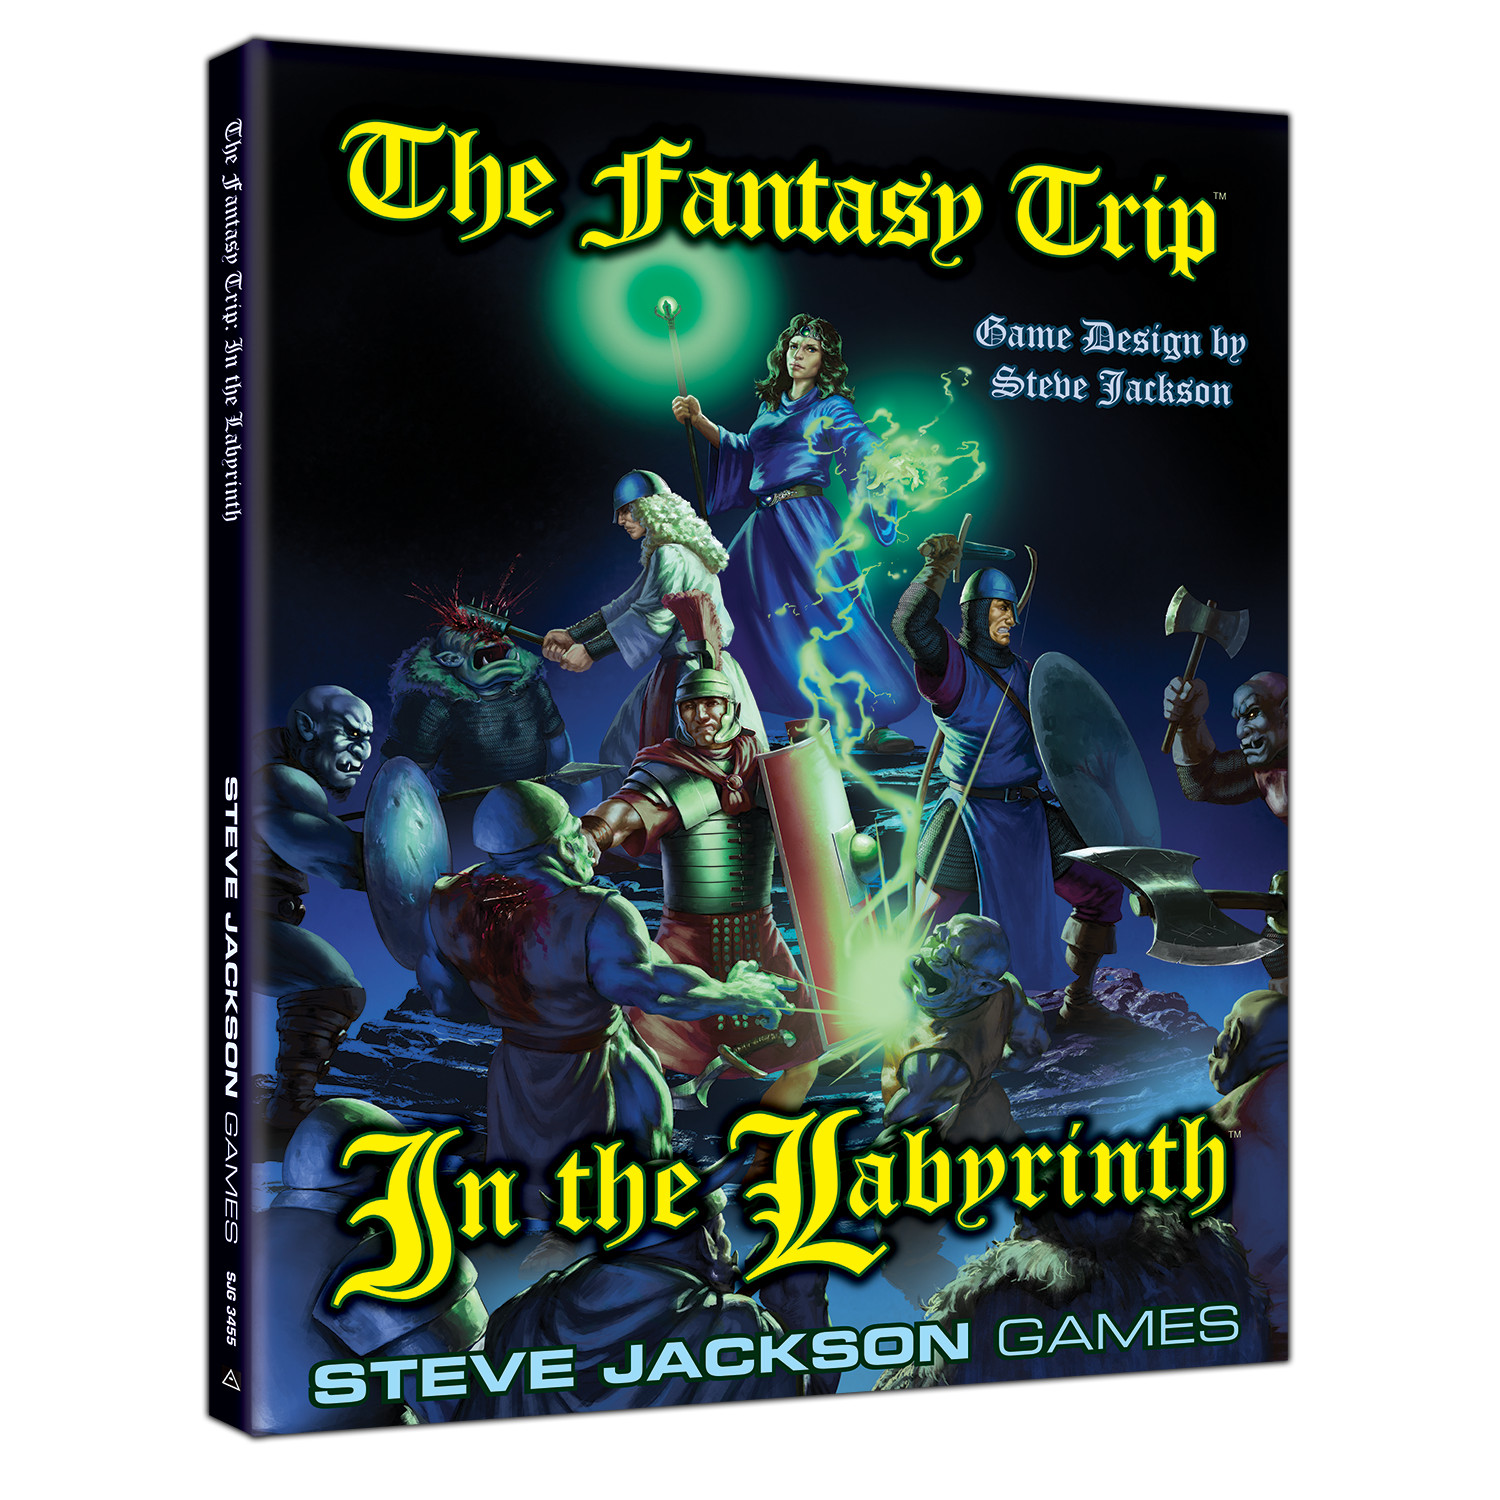 The Fantasy Trip - In The Labyrinth